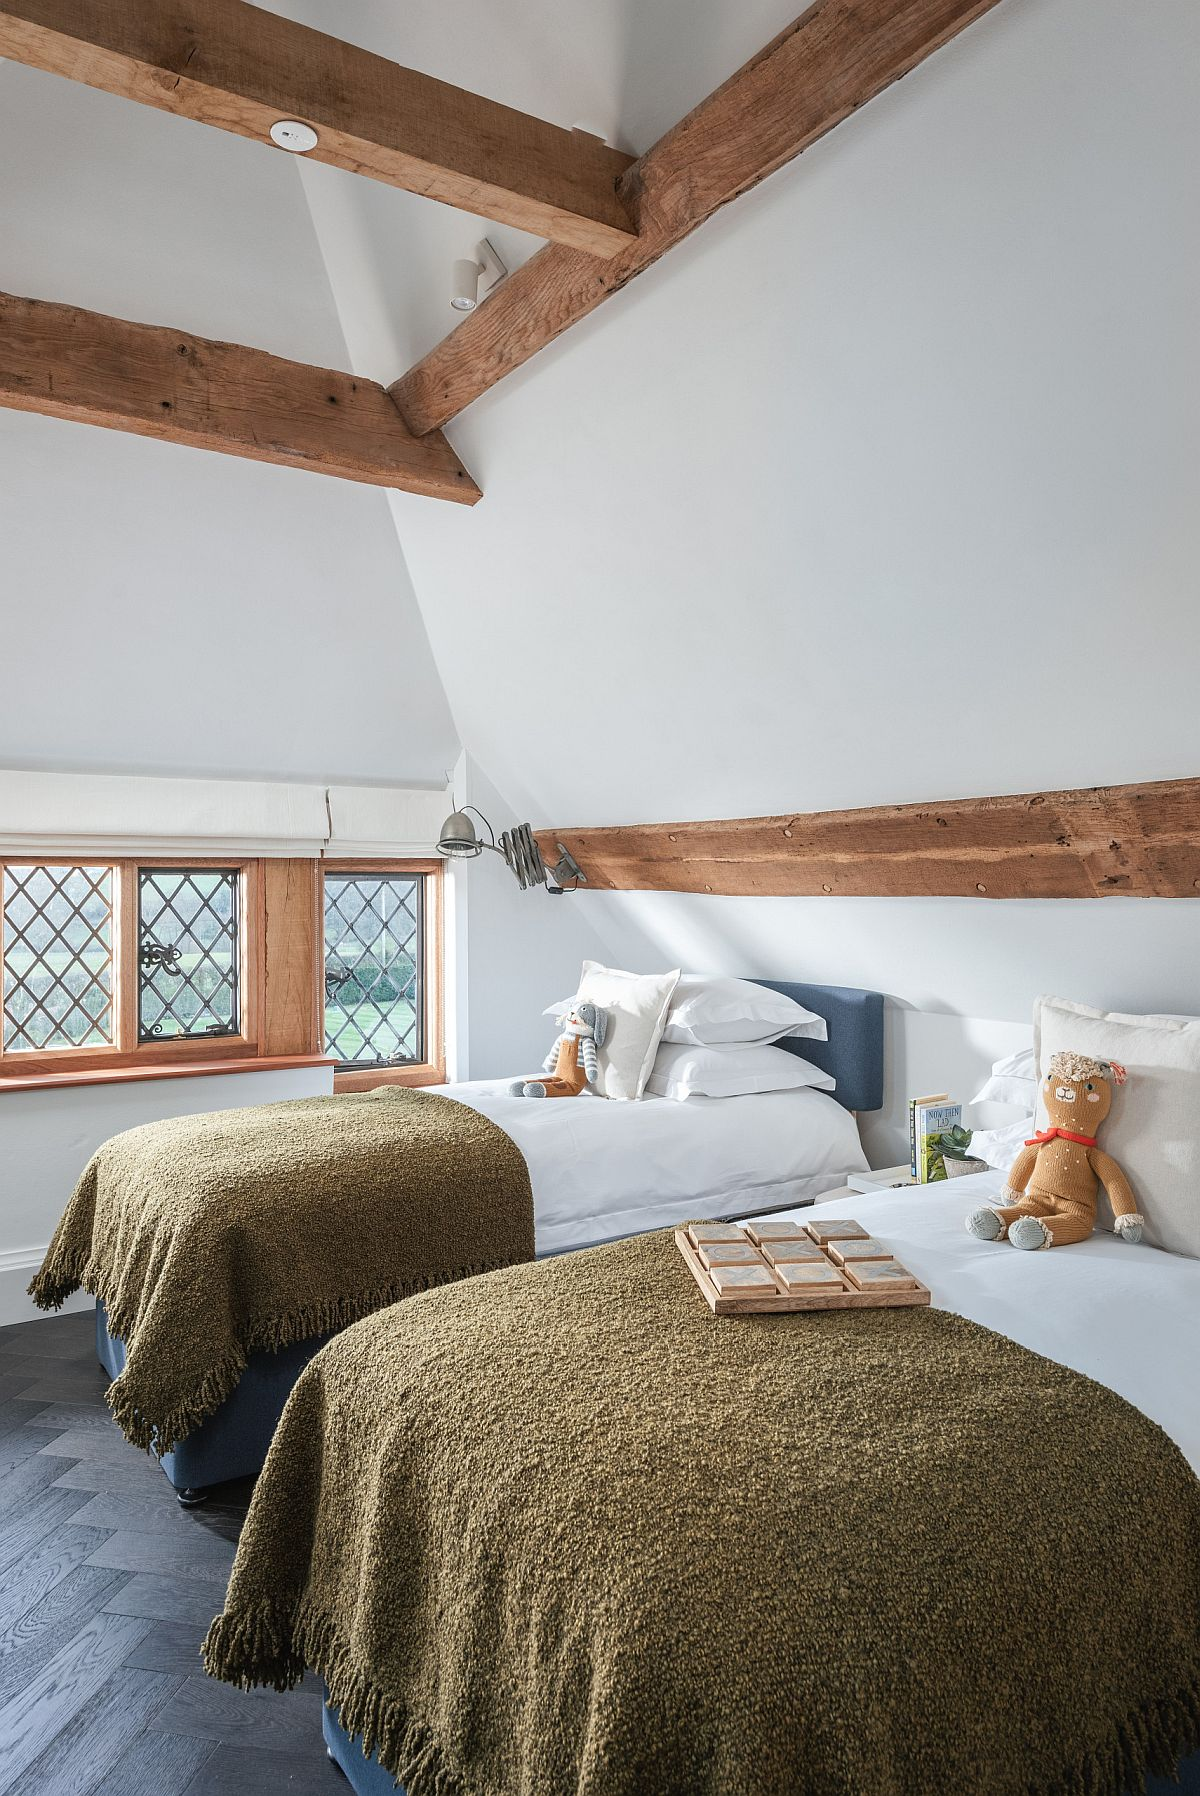 Wooden-beams-provide-warmth-to-this-stylish-bedroom-in-white-92532